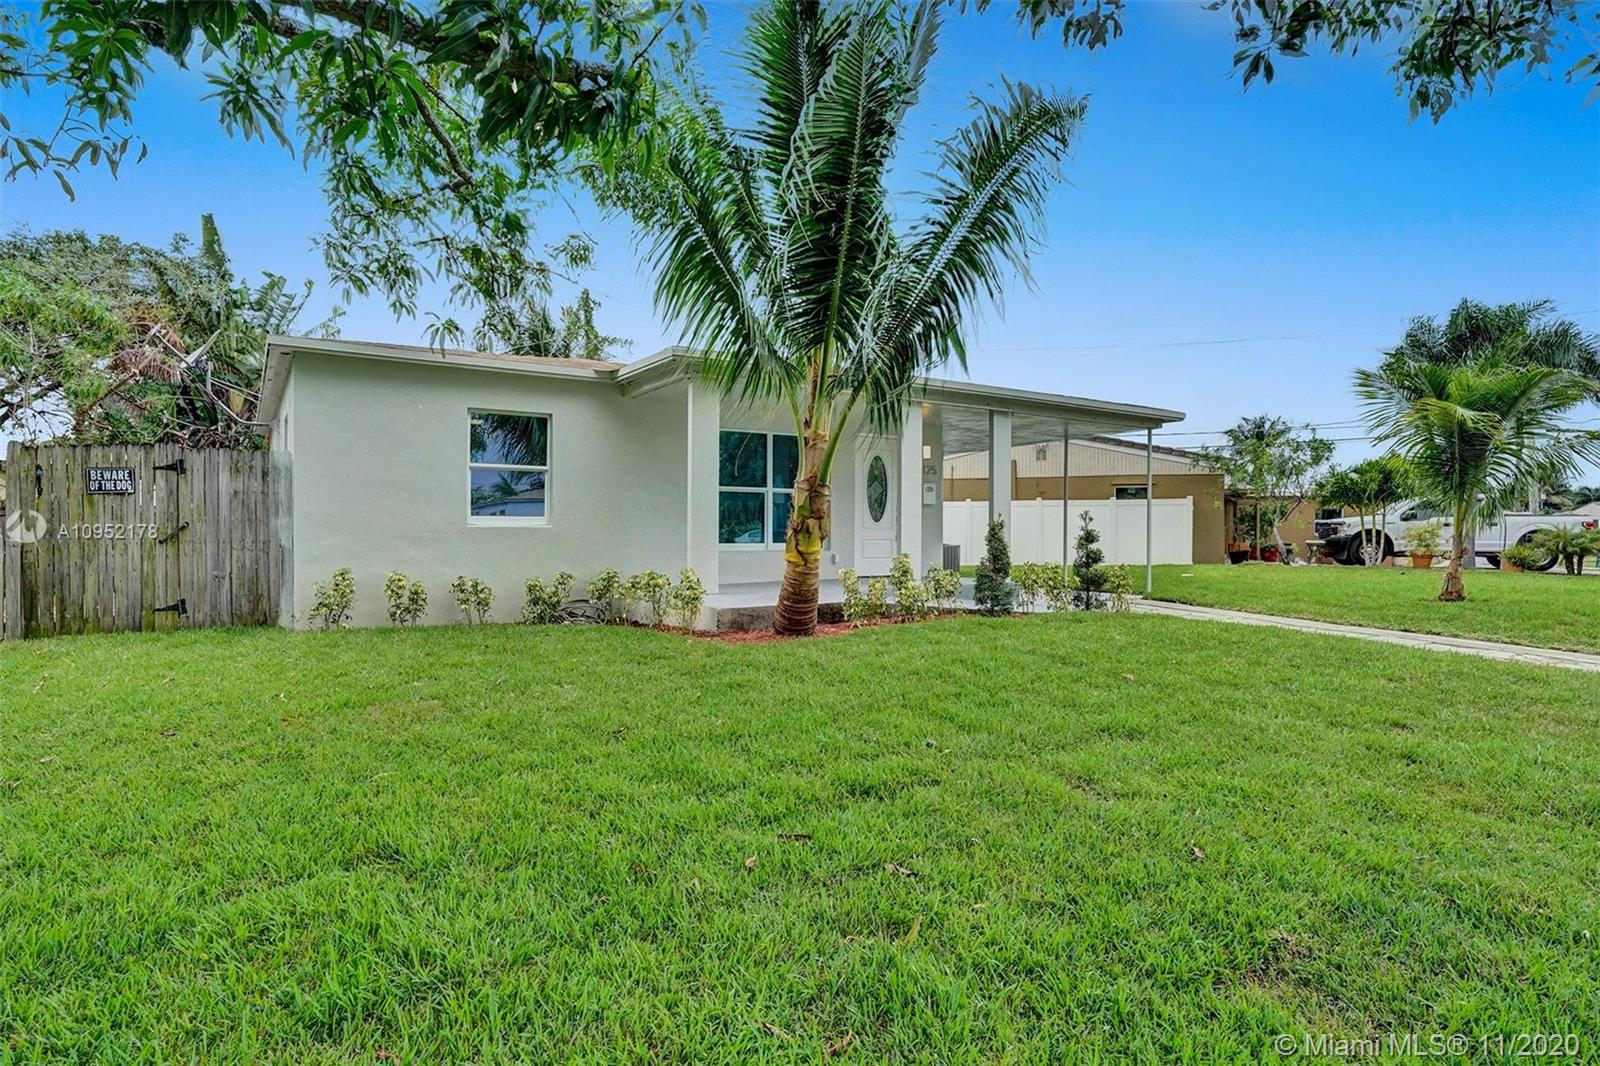 BEAUTIFULLY FULLY REMODELED 2 BEDROOM 2 BATHROOM HOME IN THE HEART OF OAKLAND PARK! PERFECT TURN-KEY HOME OR VACATION RENTAL OPPORTUNITY! HOME FEATURES ALL HURRICANE IMPACT WINDOWS AND DOORS, 2018 SHINGLE ROOF, 2014 A/C UNIT, BRAMD NEW ELECTRIC TANKLESS WATER HEATER, NEW BATHROOMS, NEW IRRIGATION SYSTEMS WITH NEW PLANTS, NEW CUSTOM KITCHEN WITH HIGH-END EUROPEAN CABINETS, BRAND NEW STAINLESS STEEL APPLIANCES, QUARTZ COUNTERTOP, RECESSED LIGHTING THROUGHOUT, VERY LARGE BACKYARD NICE FOR ENTERTAINMENT OR TO BUILD A POOL, SPACIOUS DRIVEWAY, FRESHLY PAINTED INSIDE/OUT... MINUTES FROM SCHOOLS, BEACH, SHOPPING PLAZAS, ETC... HURRY THIS WONT LAST LONG!!